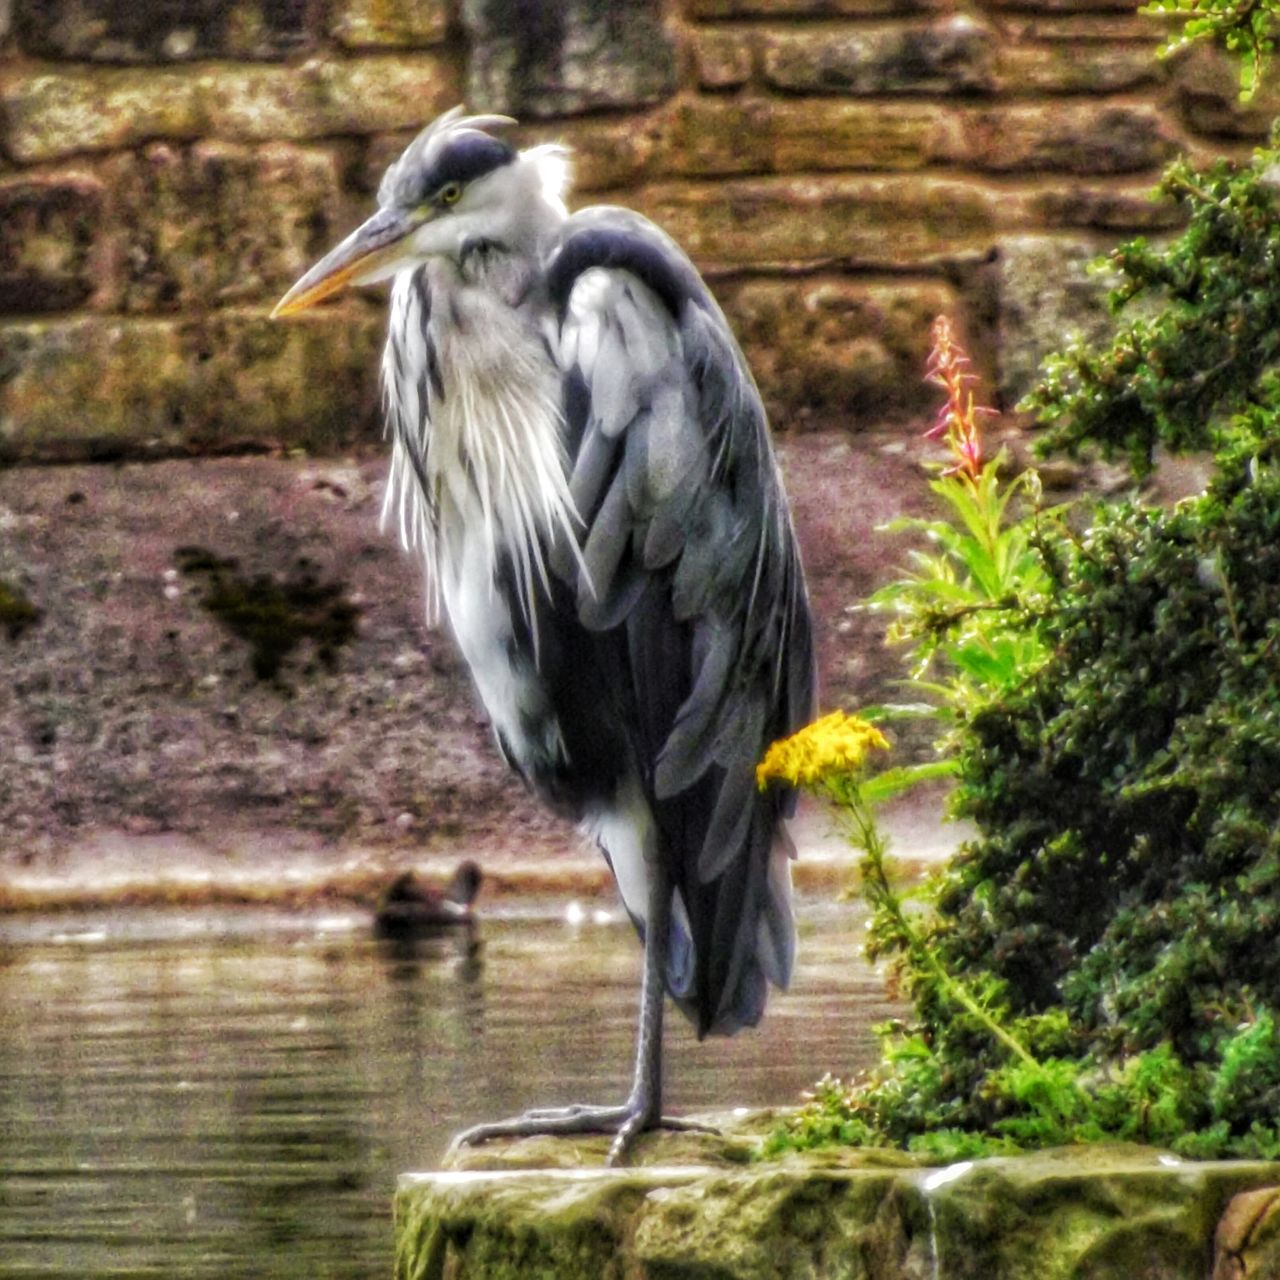 Beautiful Majestic Heron Taken at Oldham Alexandra Park Manchester Heron Perching Heron Birds In The Wild Eyeem Wild Life Malephotographerofthemonth EyeEm Best Shots - HDR Close-up Close Up Photography Close Up Nature EyeEm Masterclass Malephotographerofthemonth Nature_collection Wildlife Photography Fujifilm Birds_collection EyeEm Wildlife Wild Beauty EyeEm Best Shots - Nature Wild Birds Birds Of EyeEm  Eyeemphoto Beauty In Nature Hdr_captures Creative Light And Shadow Color Photography Eyeem Photography Nature And Wildlife By Tony Bayliss